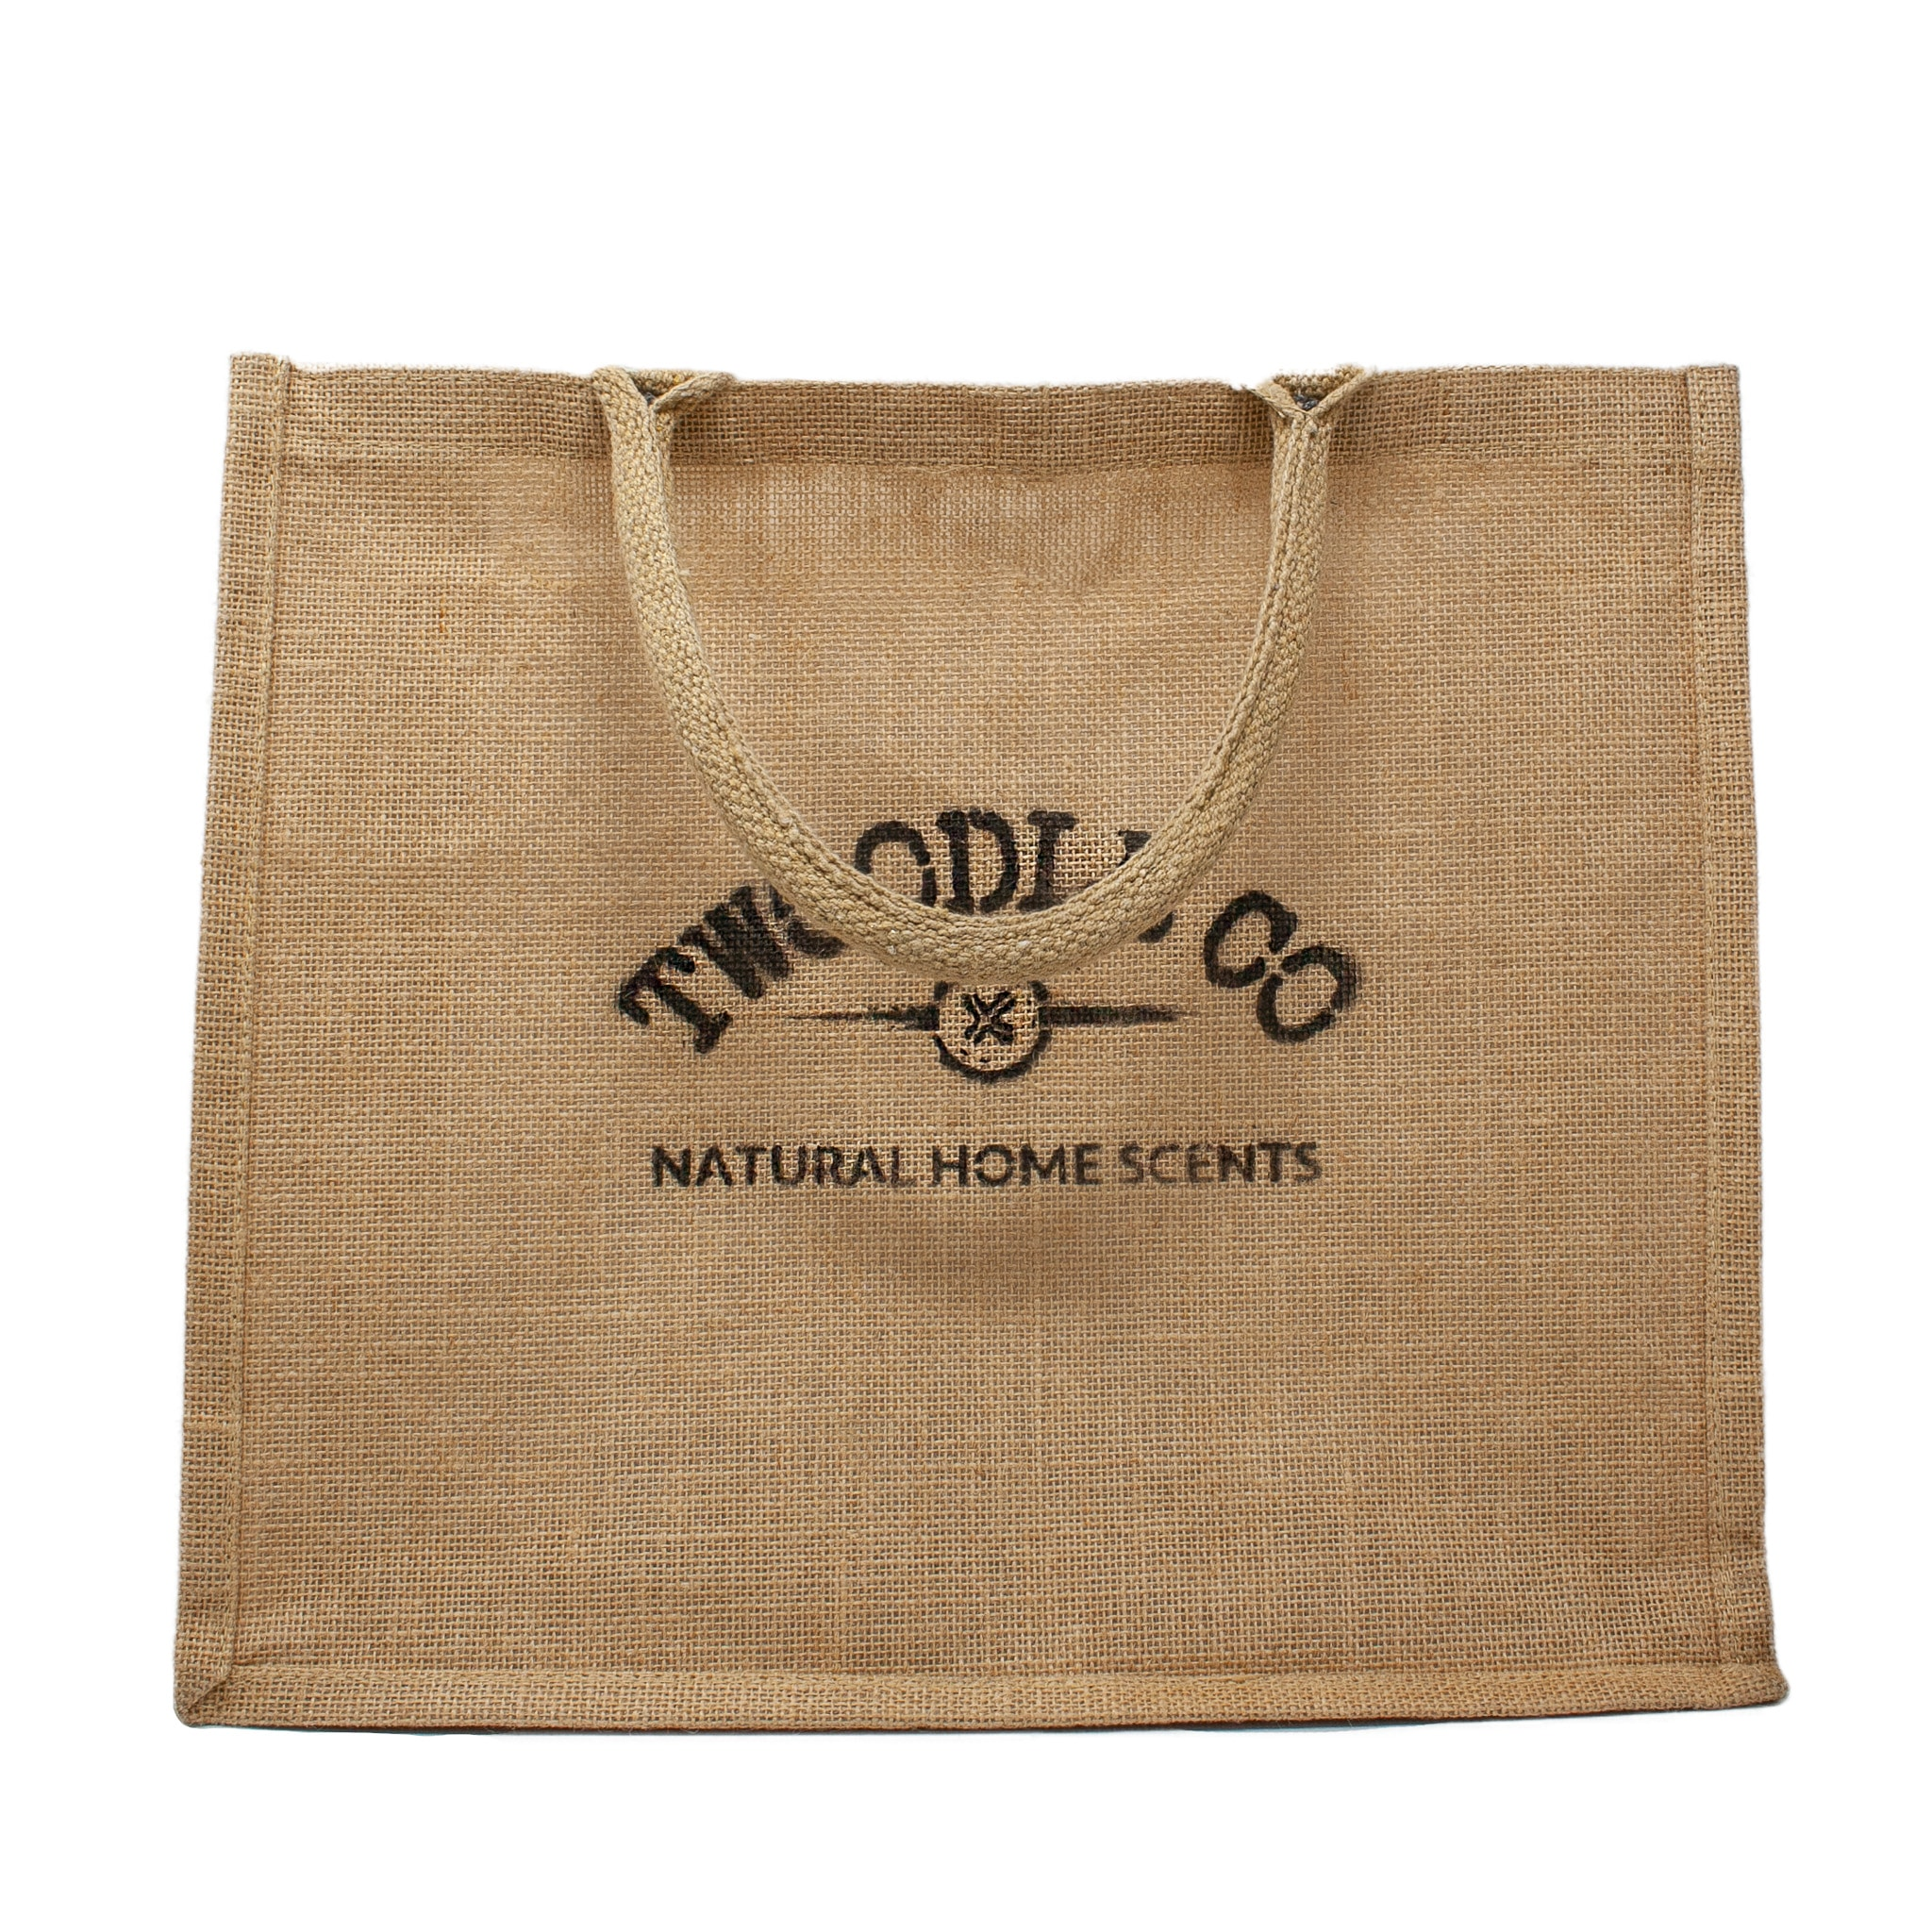 Eco friendly tote bag by Twoodle Co Natural Home Scents